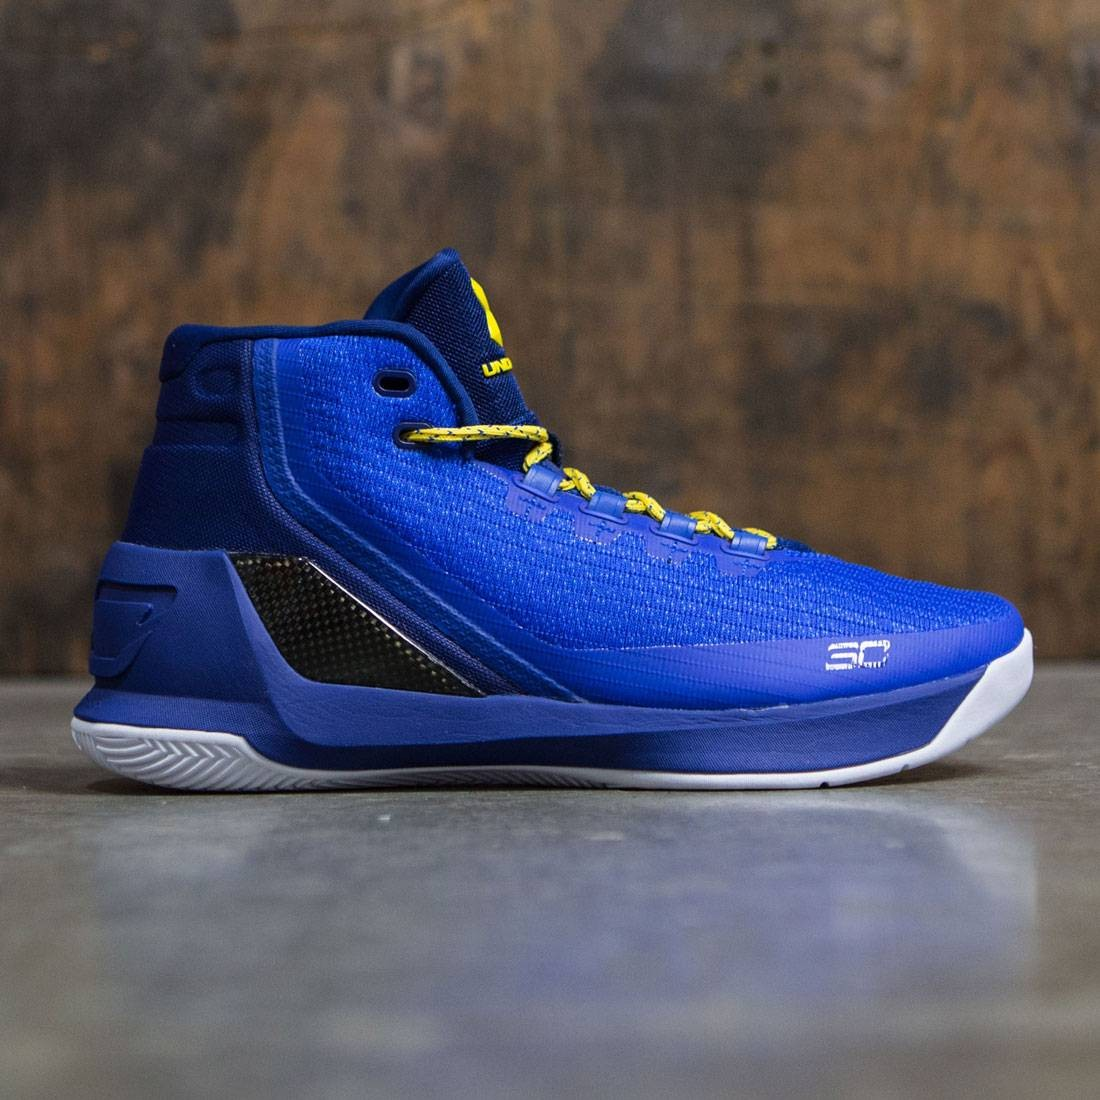 Under Armour Men Curry 3 - Dub Nation Heritage blue yellow 7180bdb94